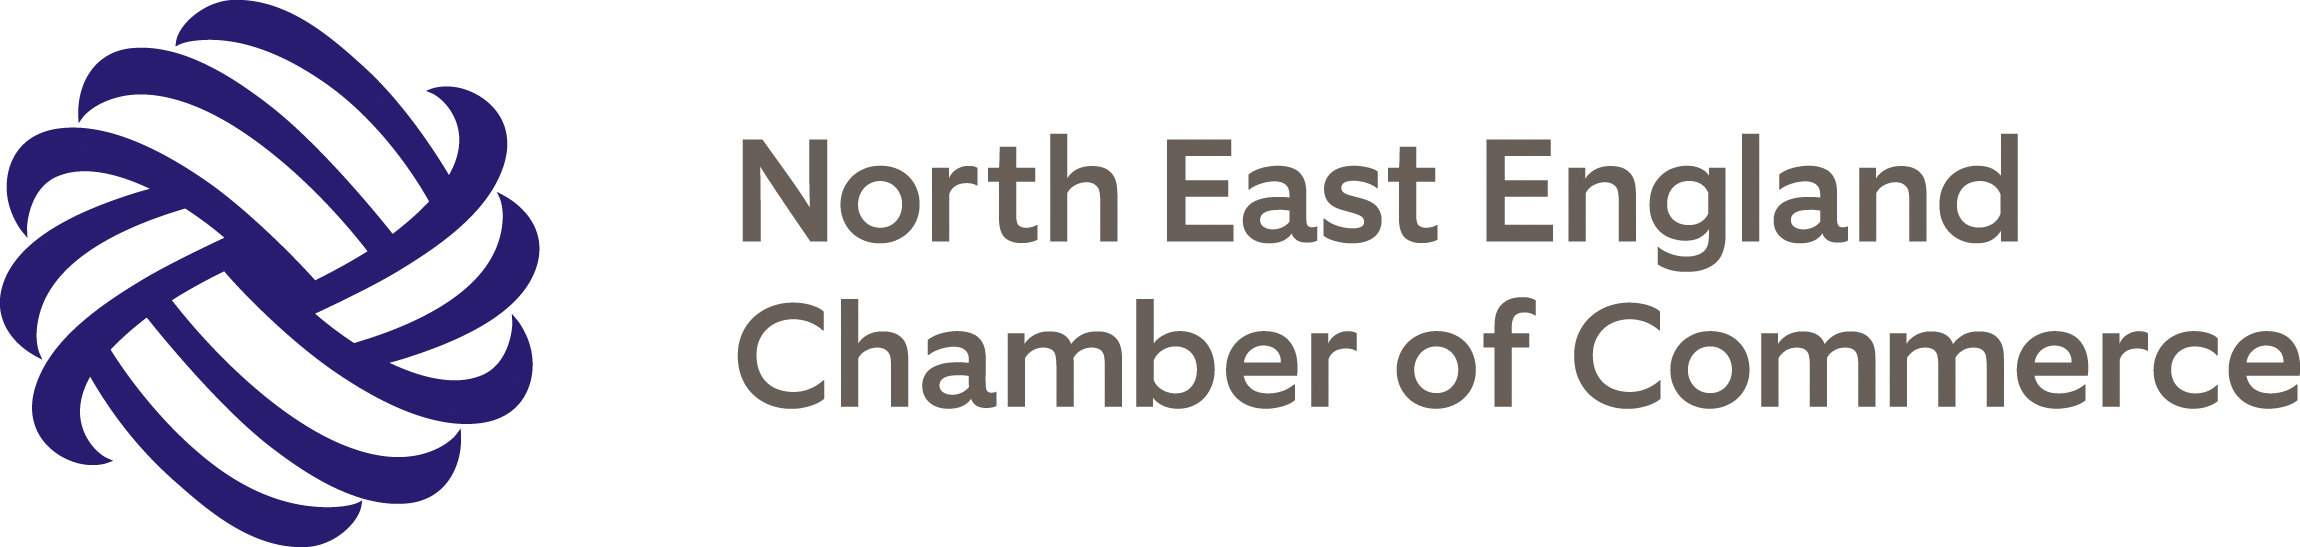 North East England Chamber of Commerce logo